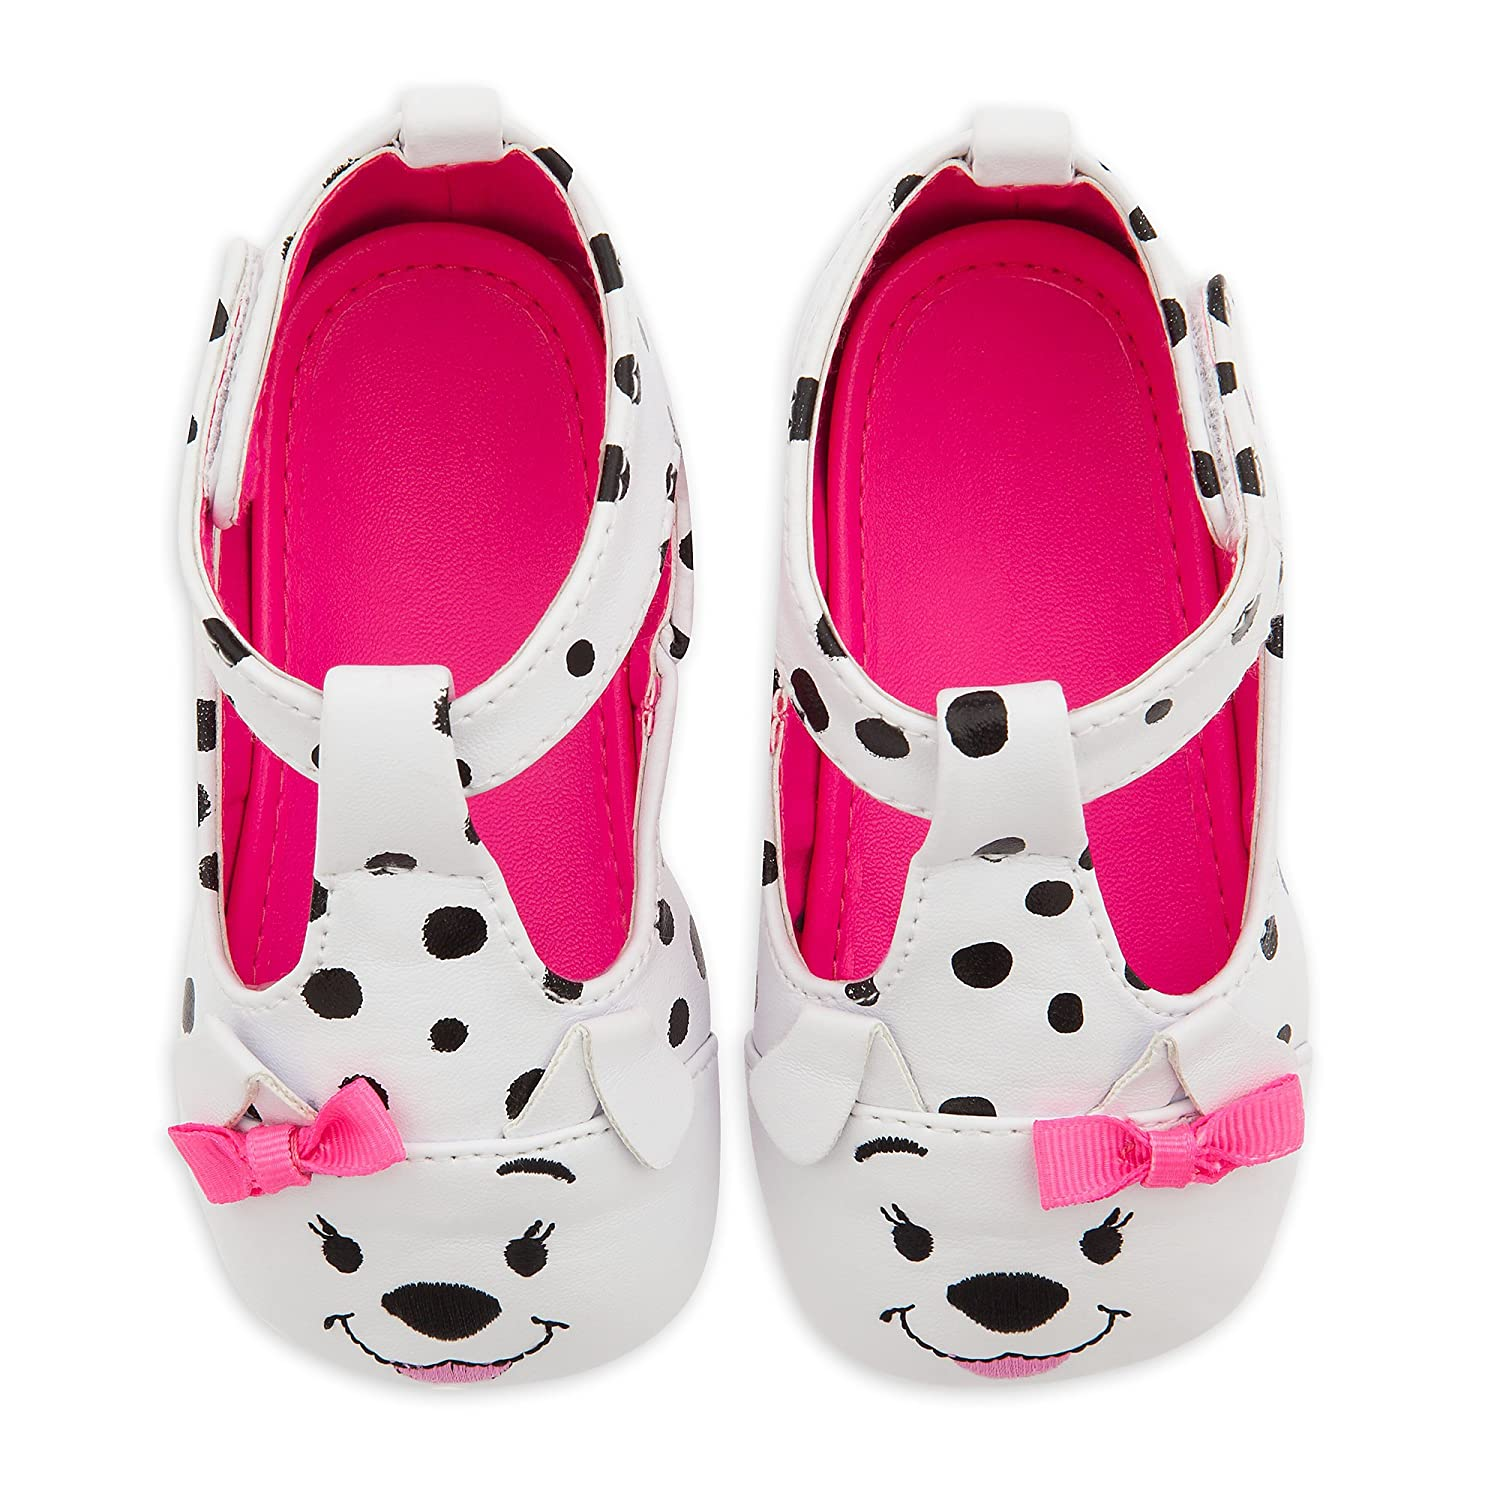 Disney 101 Dalmatians Crib Shoes for Baby,Multi,6-12 MO